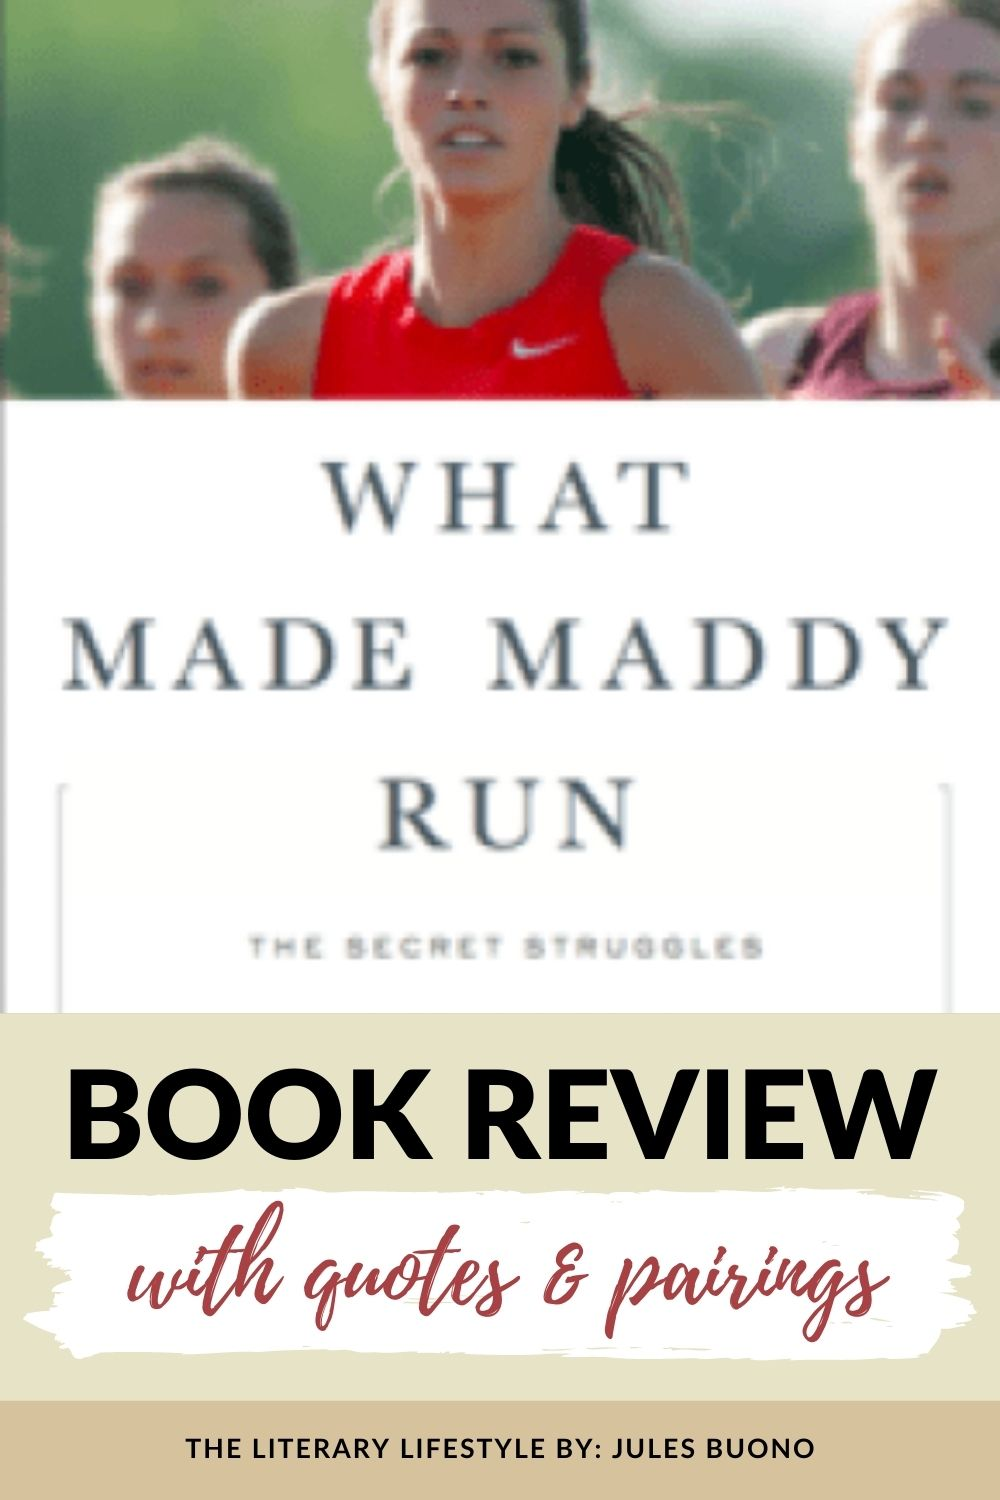 Book Review: What Made Maddy Run